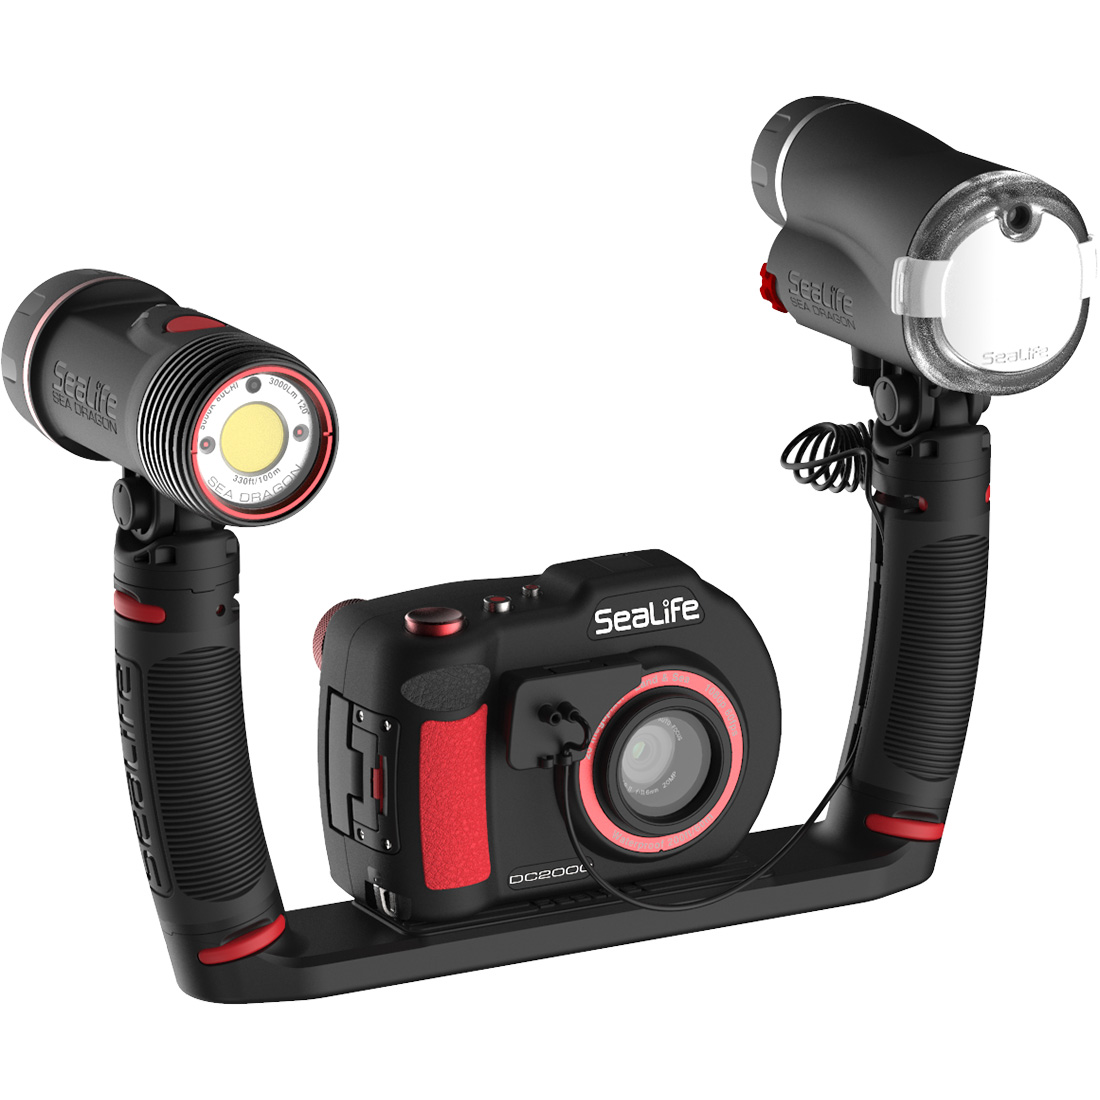 SeaLife DC2000 Pro Duo HD Underwater Digital Camera with Sea Dragon 3000 Light / Flash Set